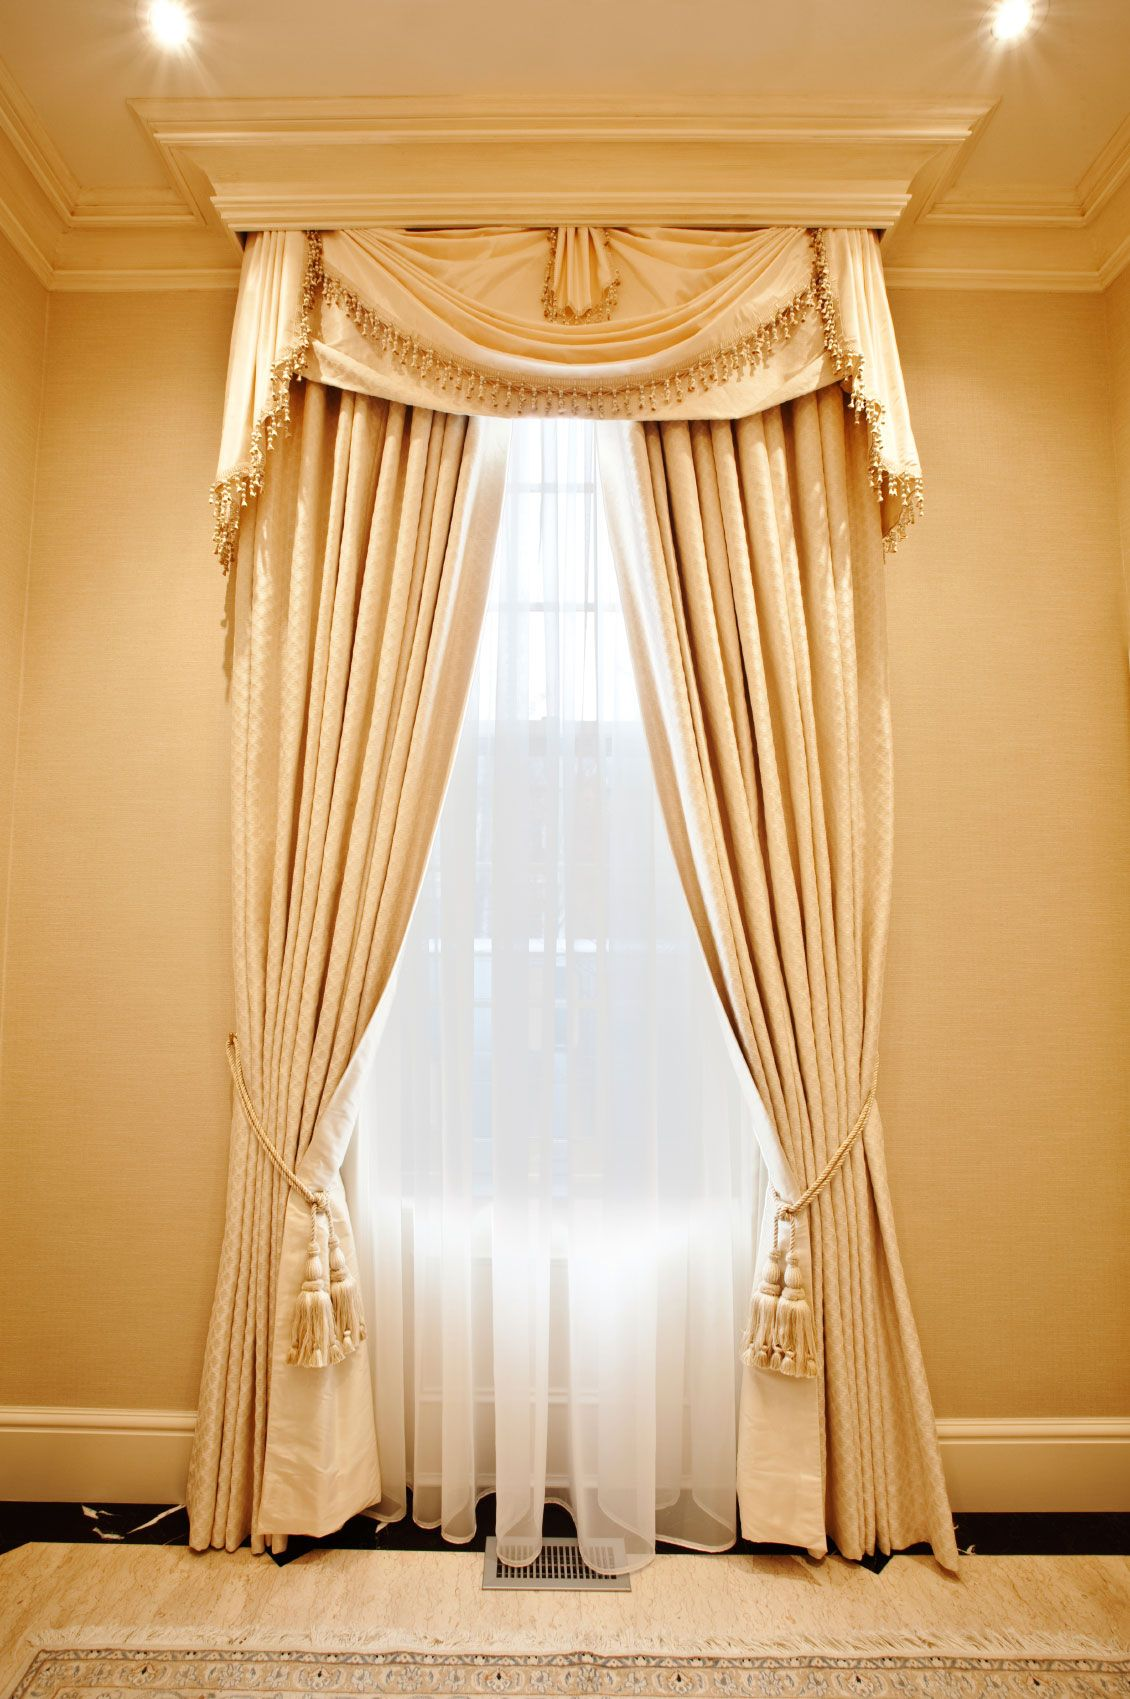 Curtain Design Ideas inspiring curtain design ideas for living room latest living room Images Curtain Designs For Living Room Curtain Ideas To Enhance The Beauty Of Rooms Luxury Curtain